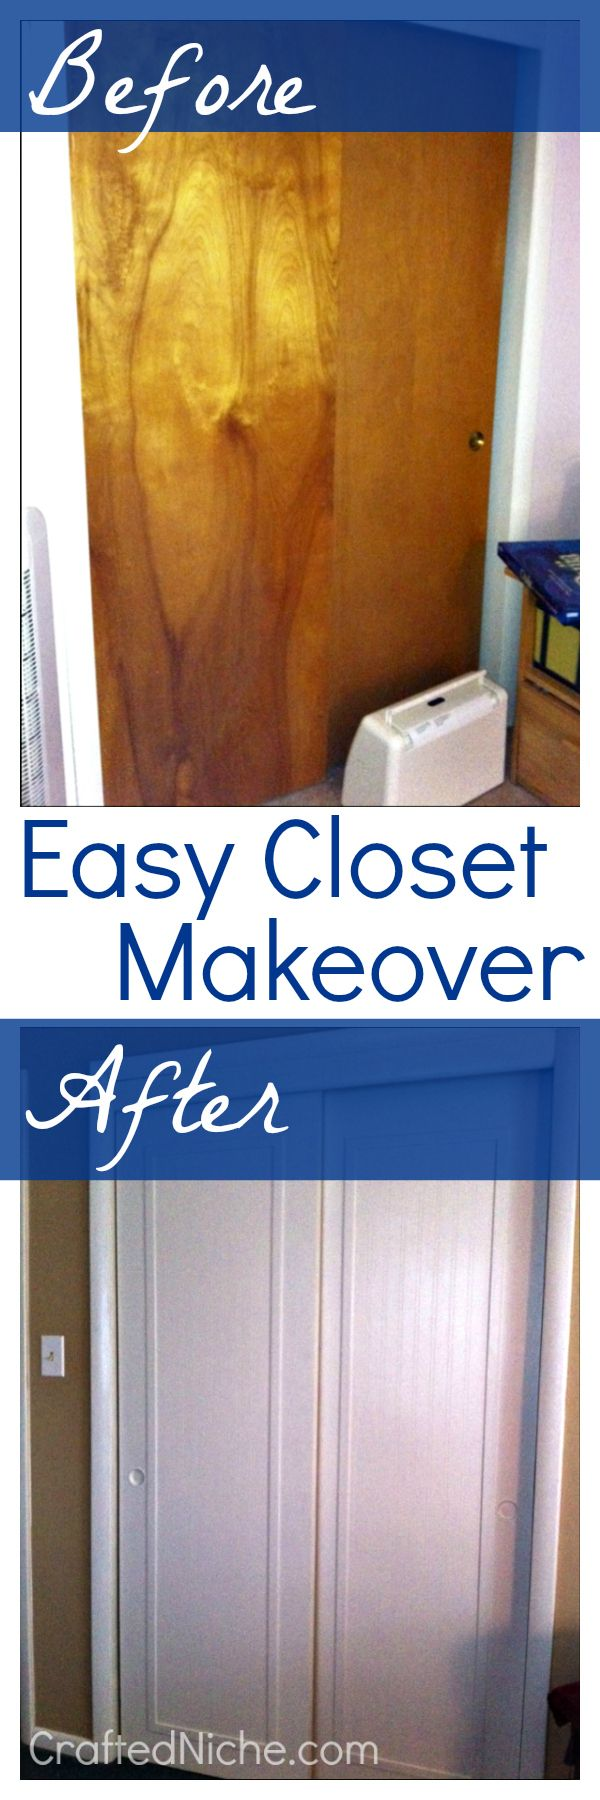 Sliding Closet Door Makeover | Crafted Niche - a lifestye blog that shares DIY crafts, recipes and tutorialsCrafted Niche – a lifestye blog that shares DIY crafts, recipes and tutorials